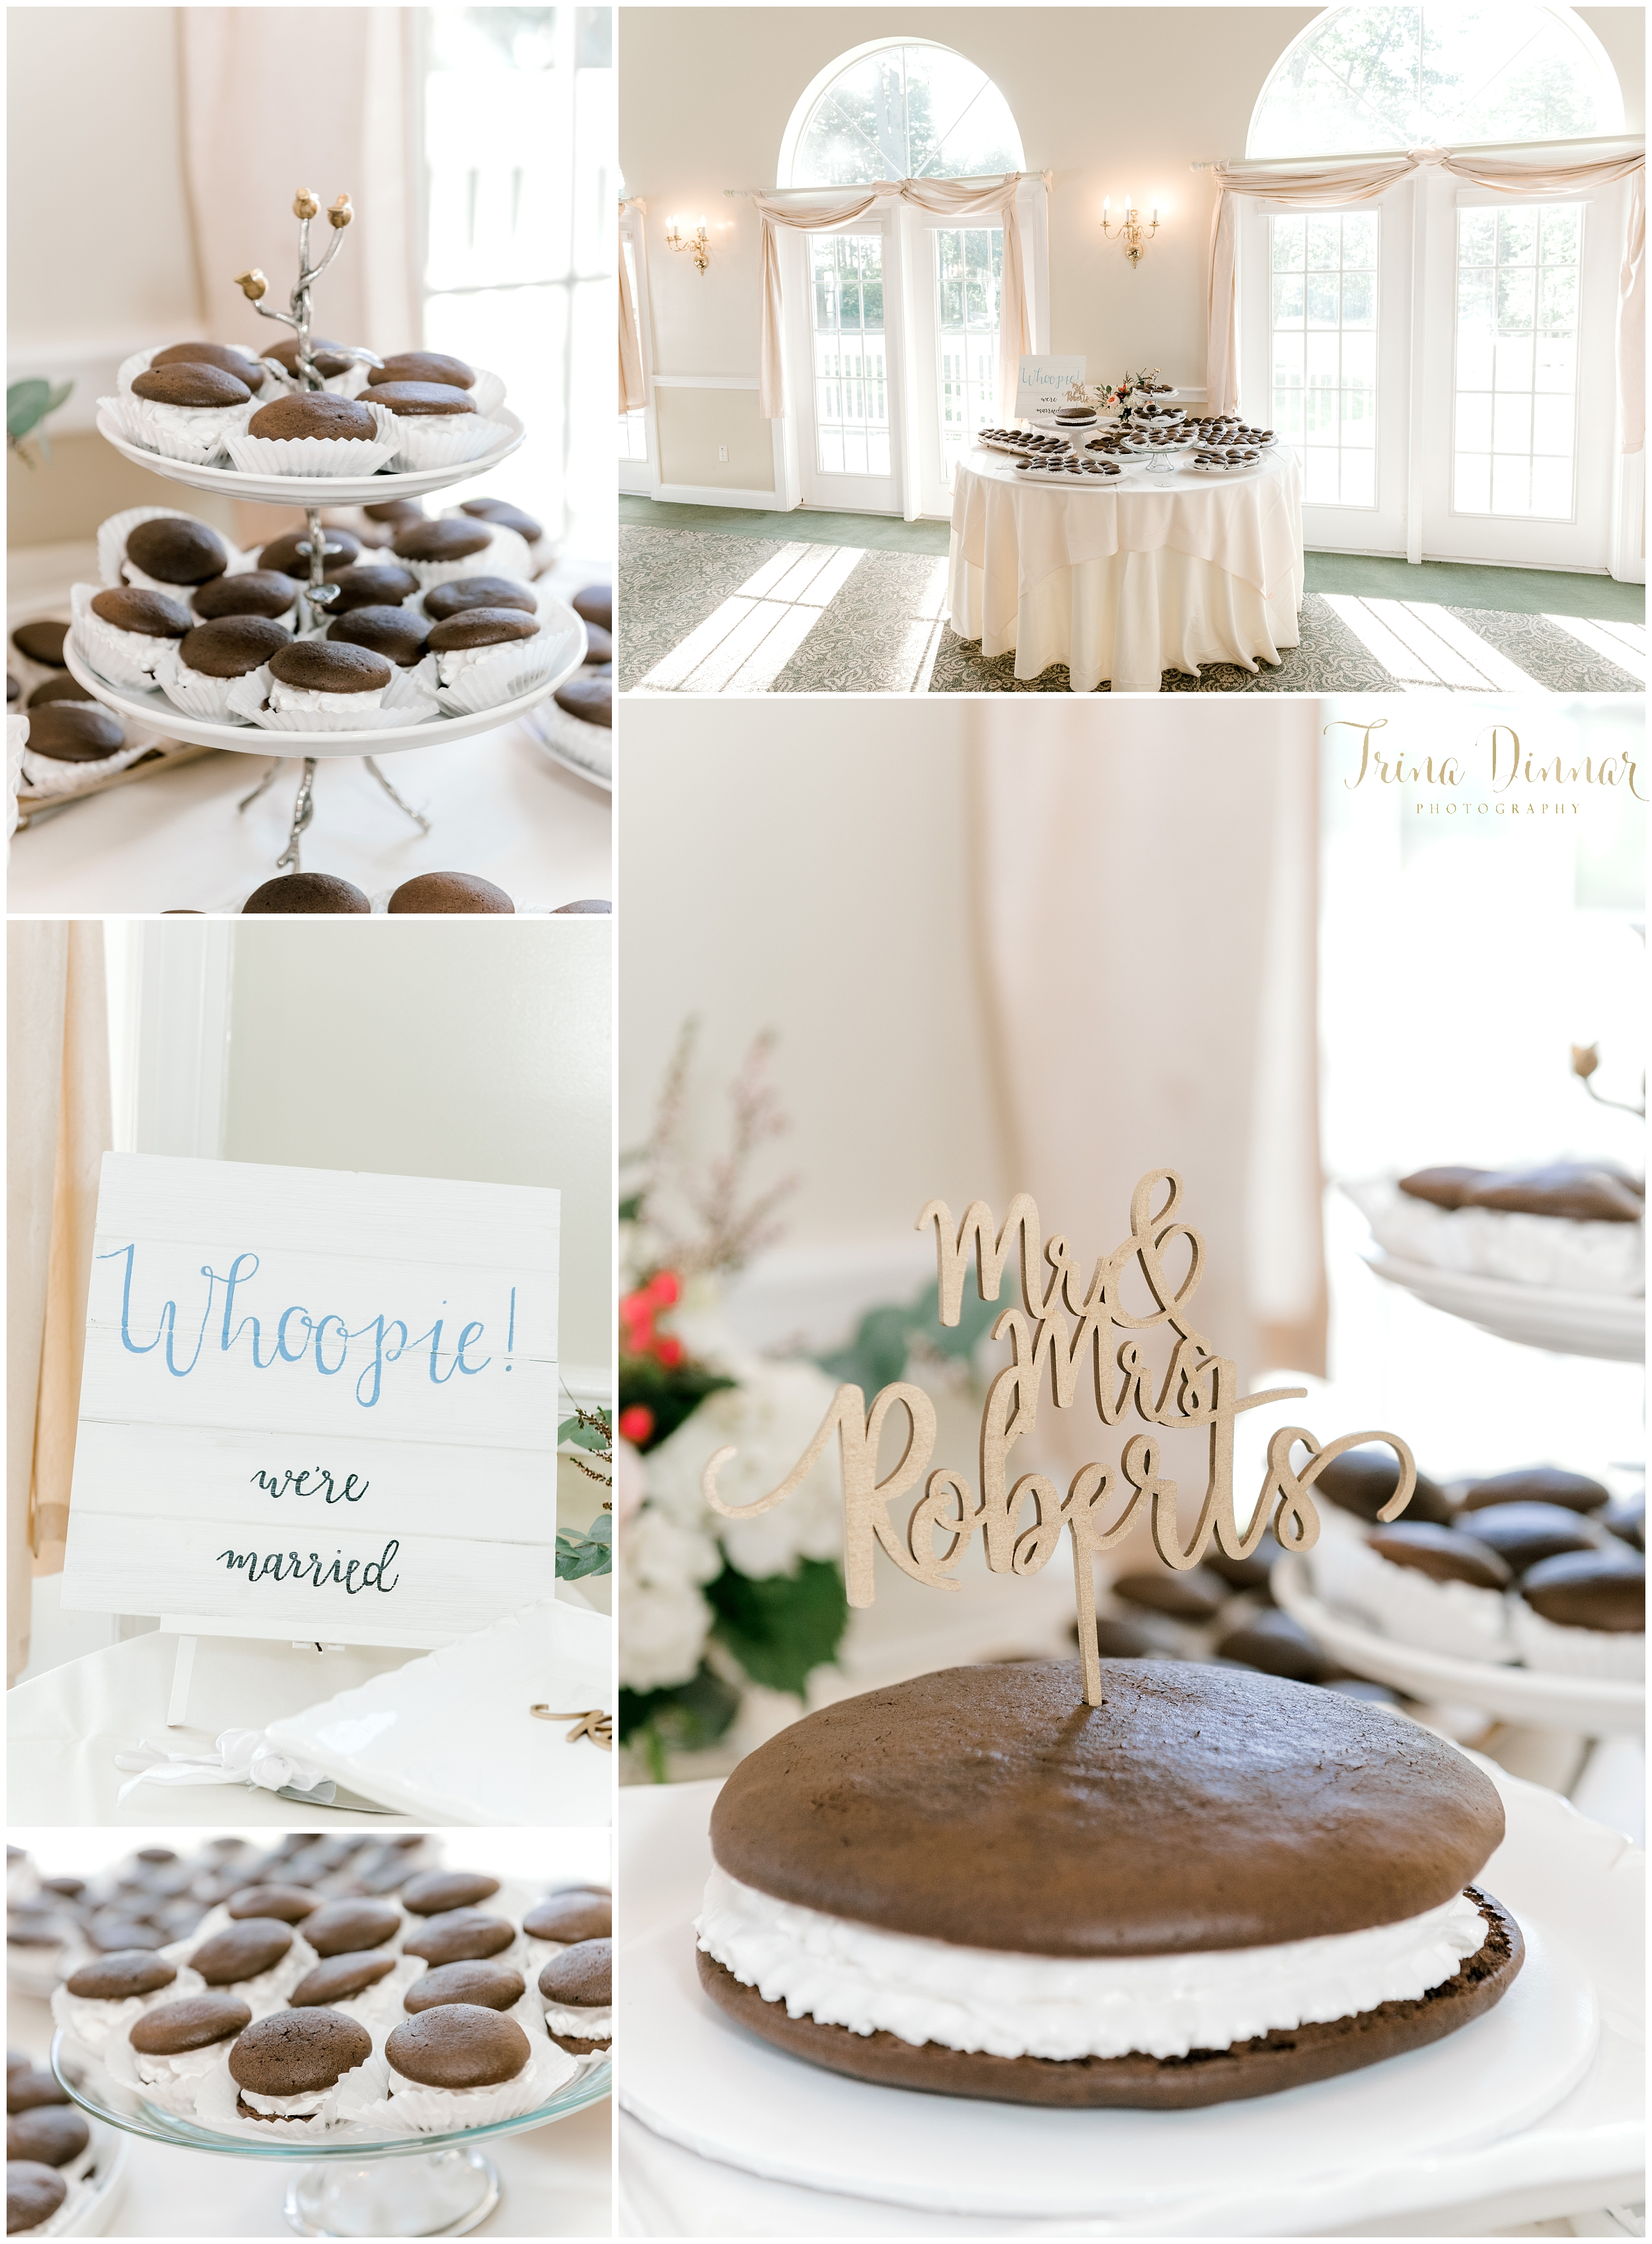 Whoopie Pie Maine Wedding Cakes and Desserts by Billi Jo